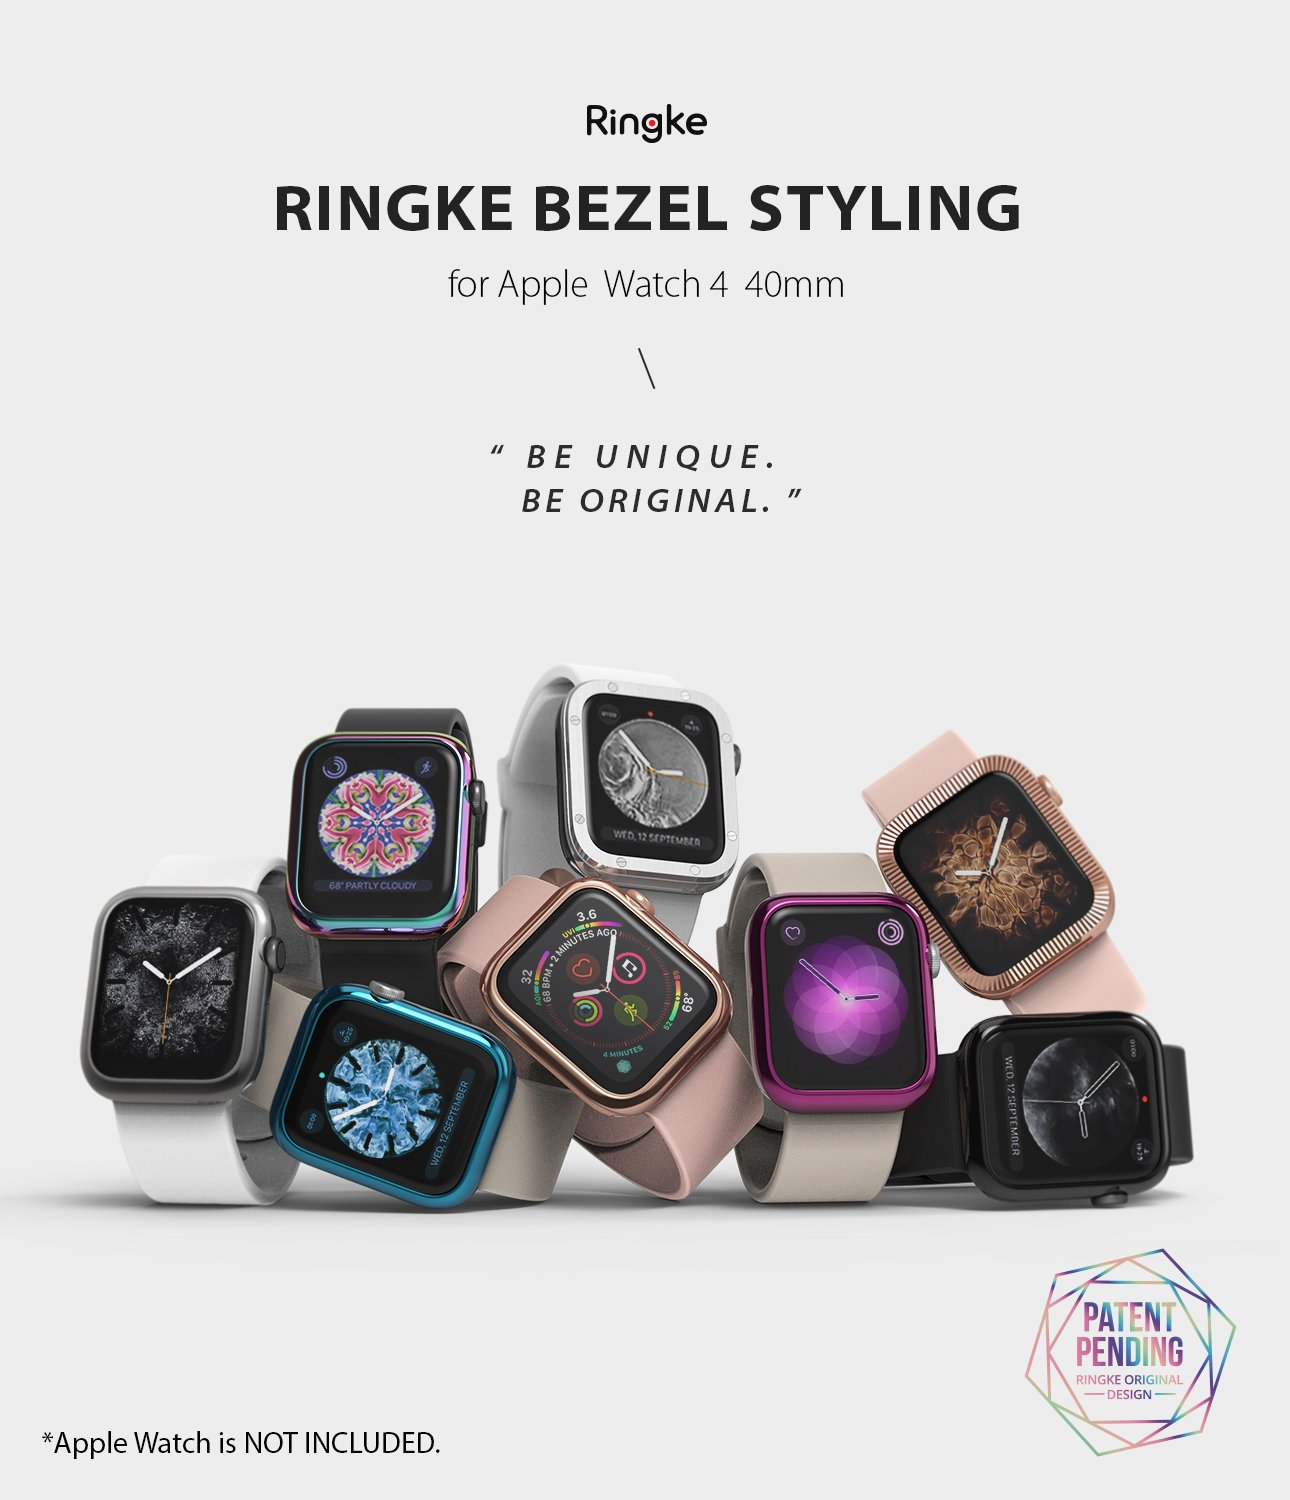 ringke bezel styling for apple watch series 6 / 5 / 4 / SE 40mm